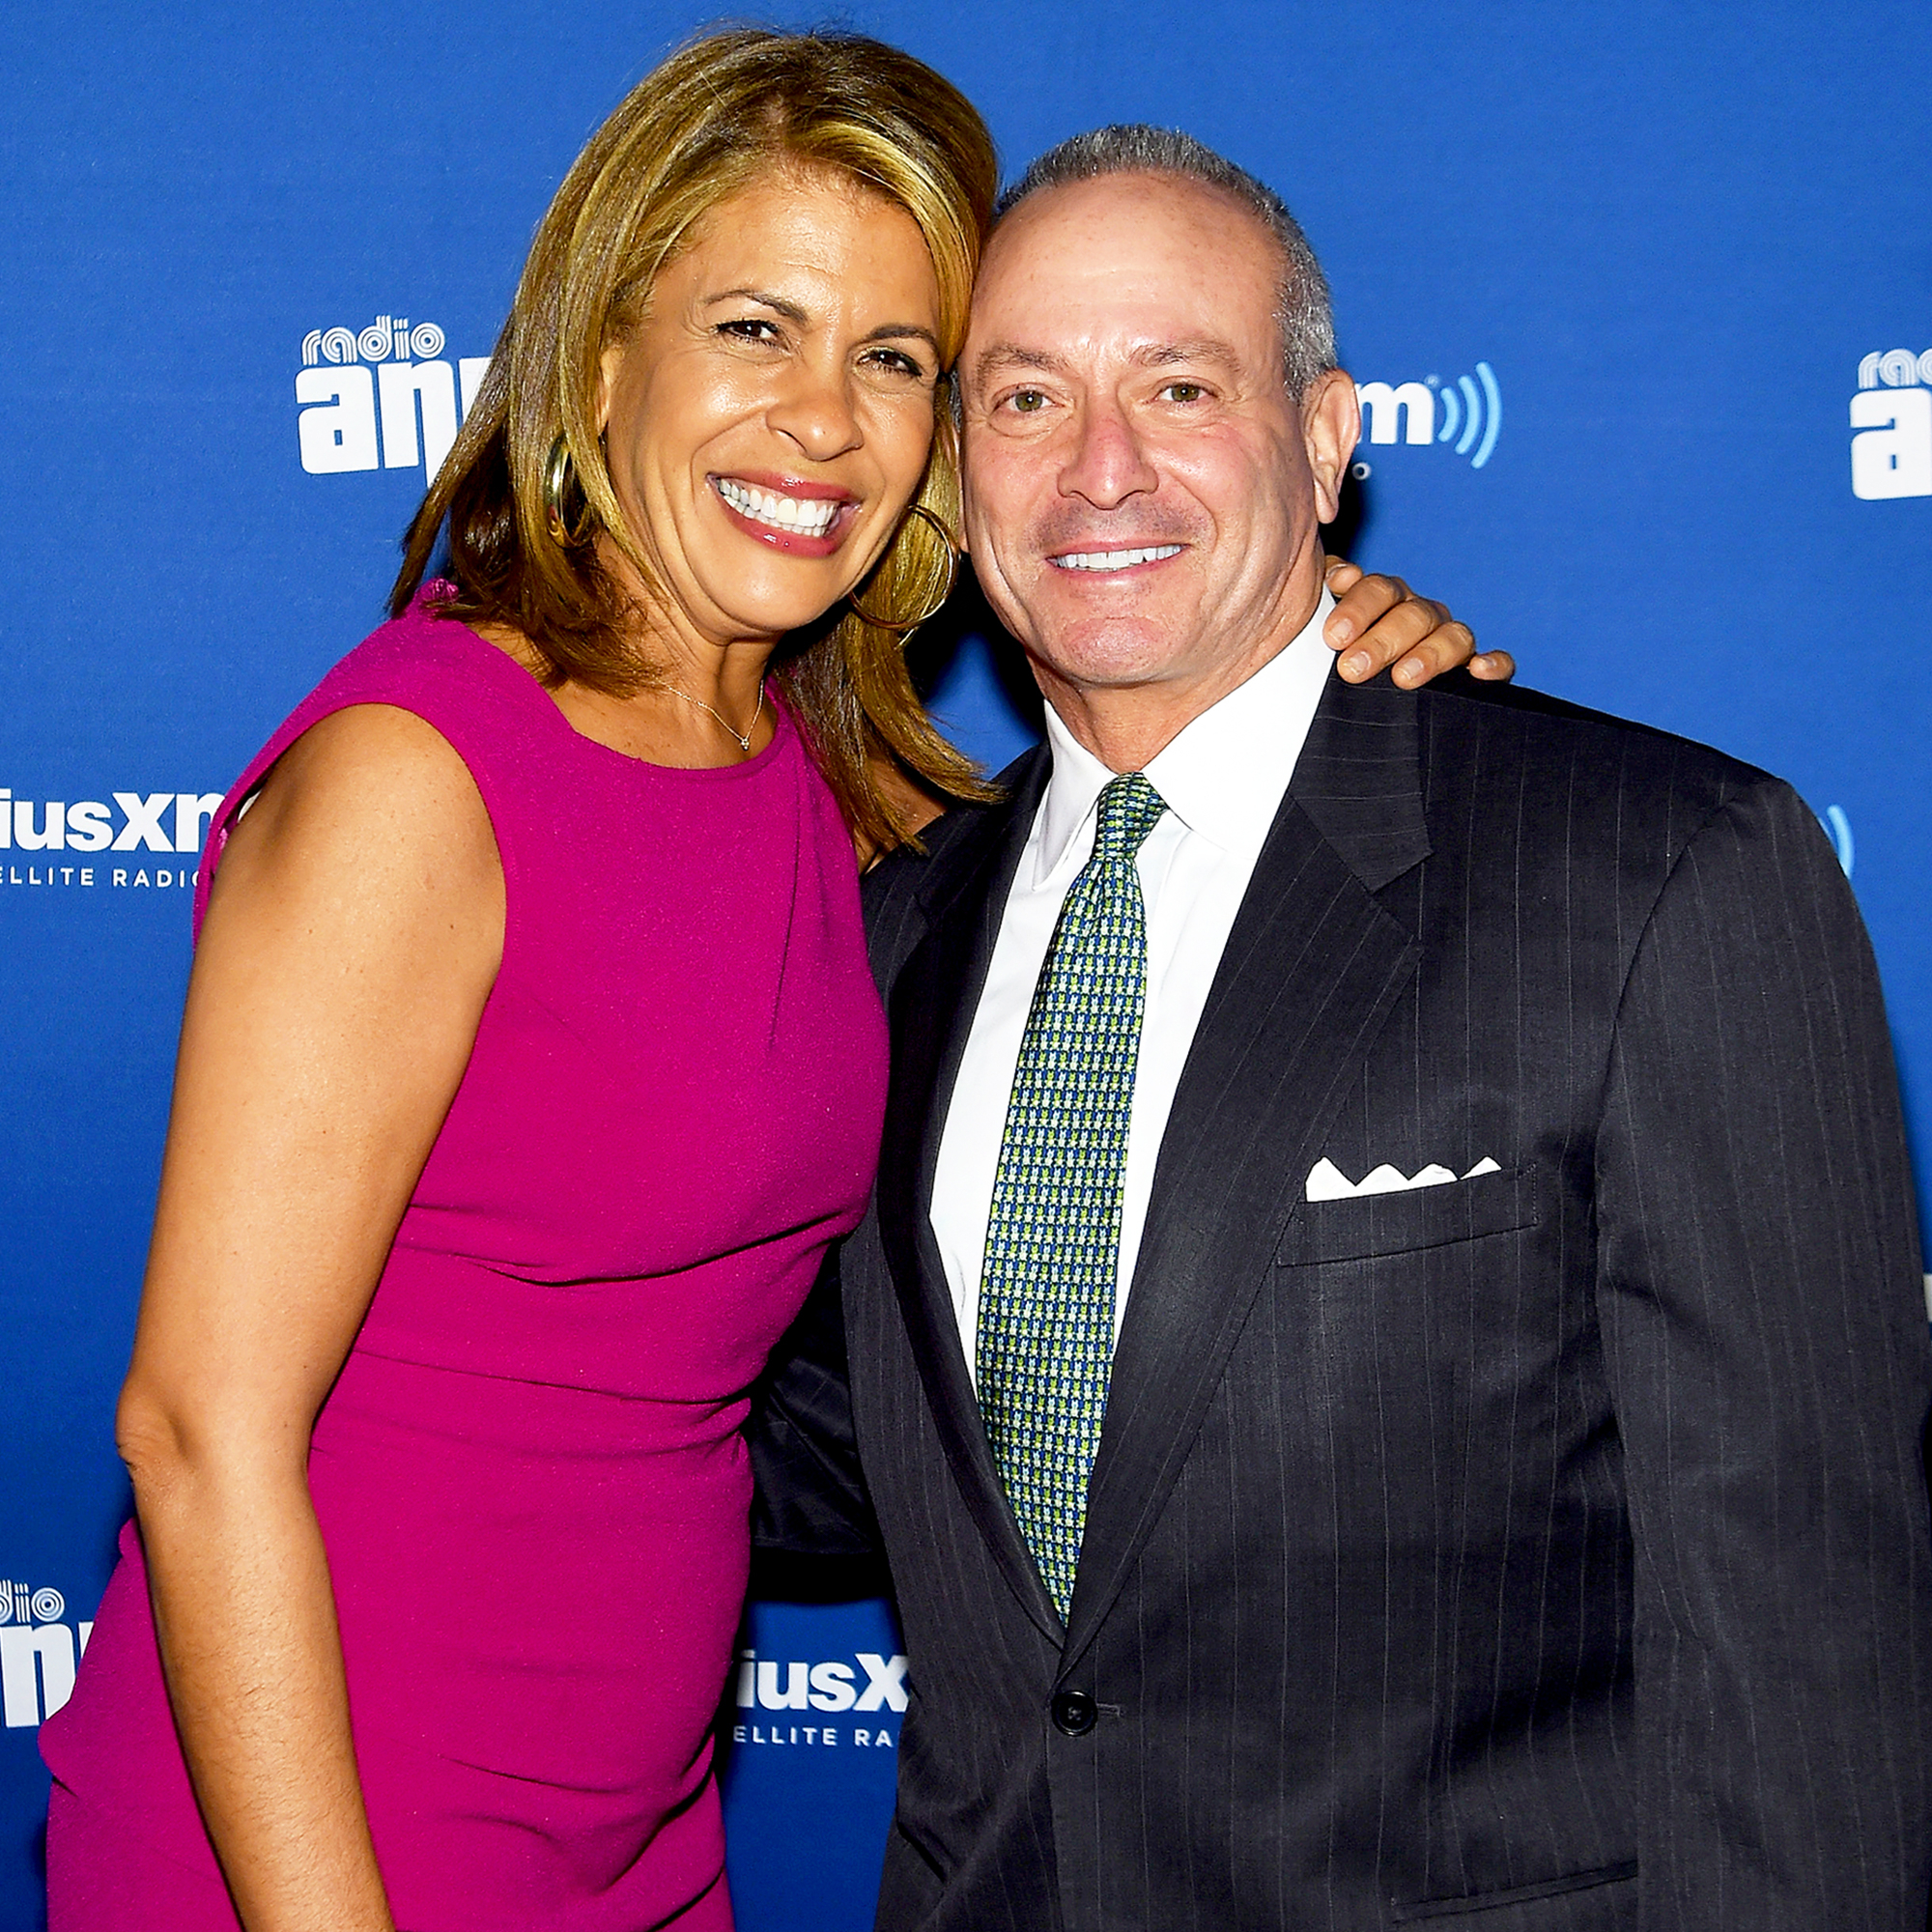 Joel Schiffman Wiki: 5 Facts To Know About Hoda Kotb's Husband